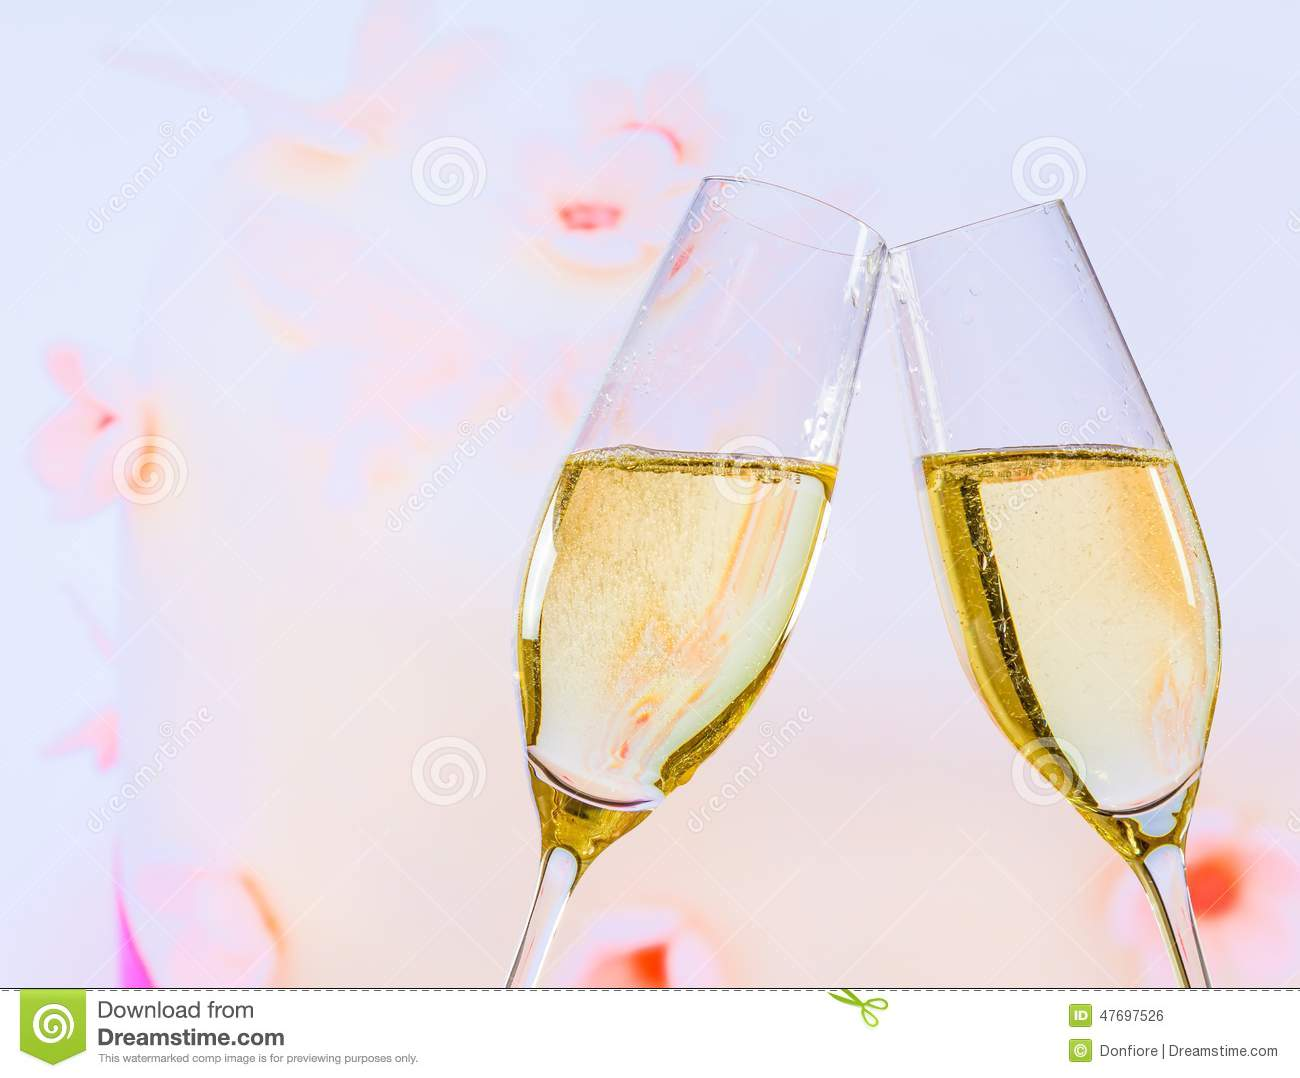 Champagne Flutes With Golden Bubbles On Wedding Cake